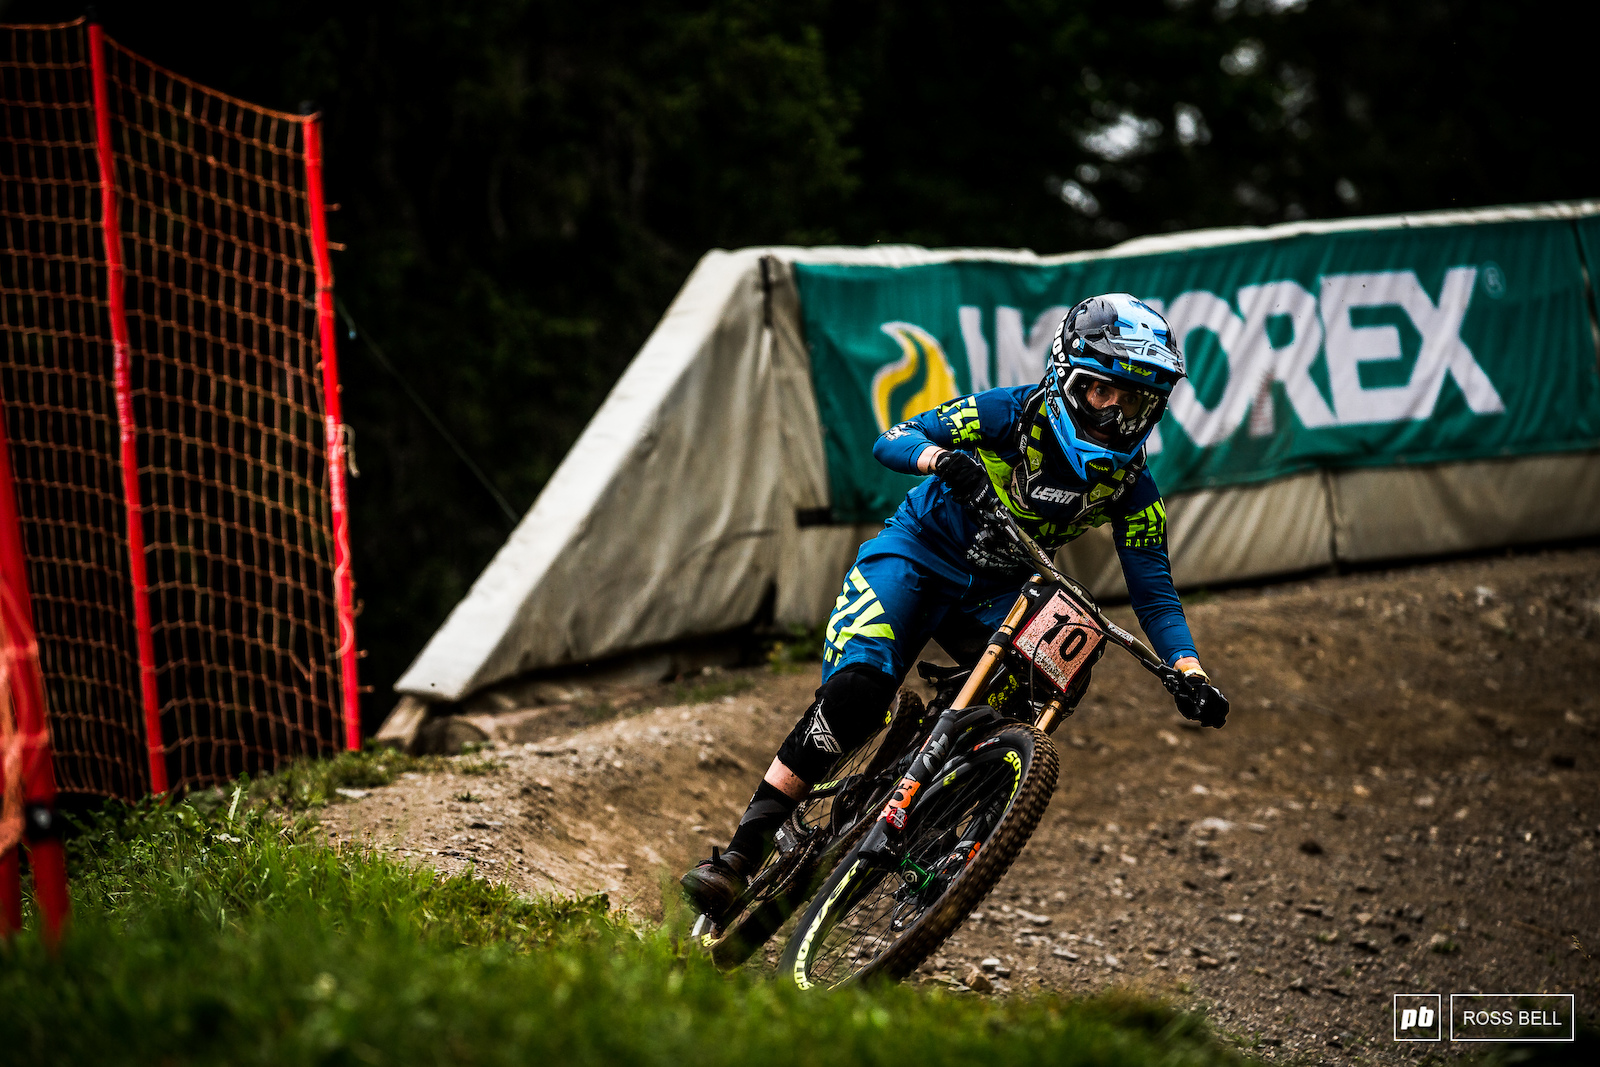 Emilie Siegenthaler did the business at home and took the third step on the podium.